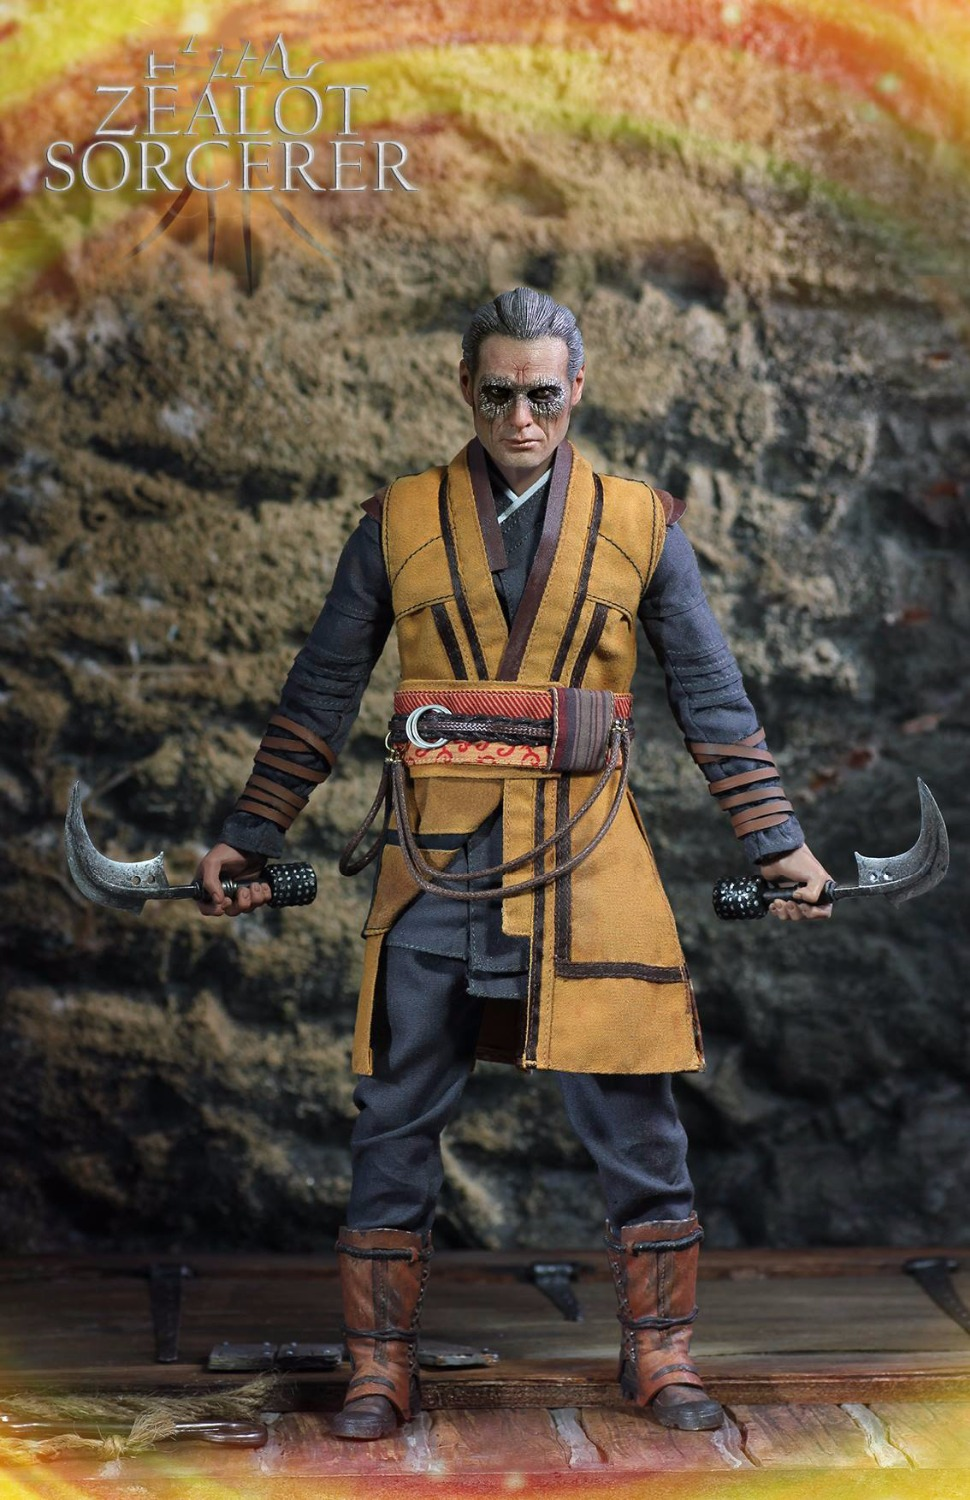 1/6 Zealot Sorcerer Master Collectible Action Figures Model Full Set With Accessories 1 6 soldier action figure the dark zone agent renegad model accessories full set figures